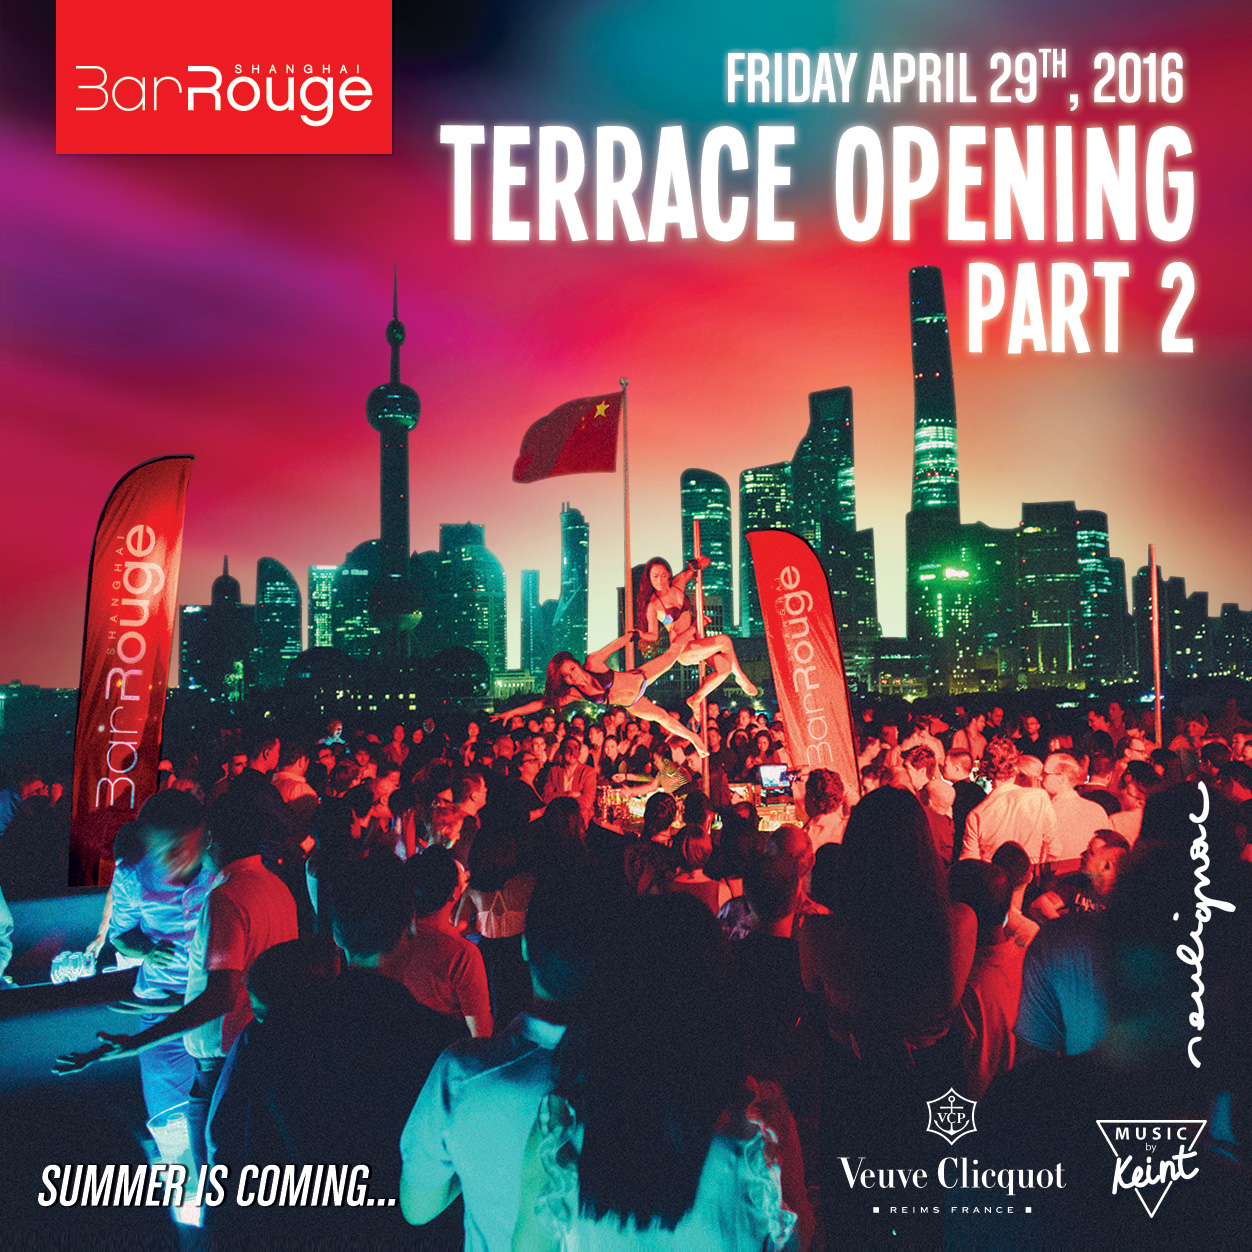 Bar Rouge Shanghai, François Soulignac, Terrace Opening Party, Creative & Art Direction for VOL Group China